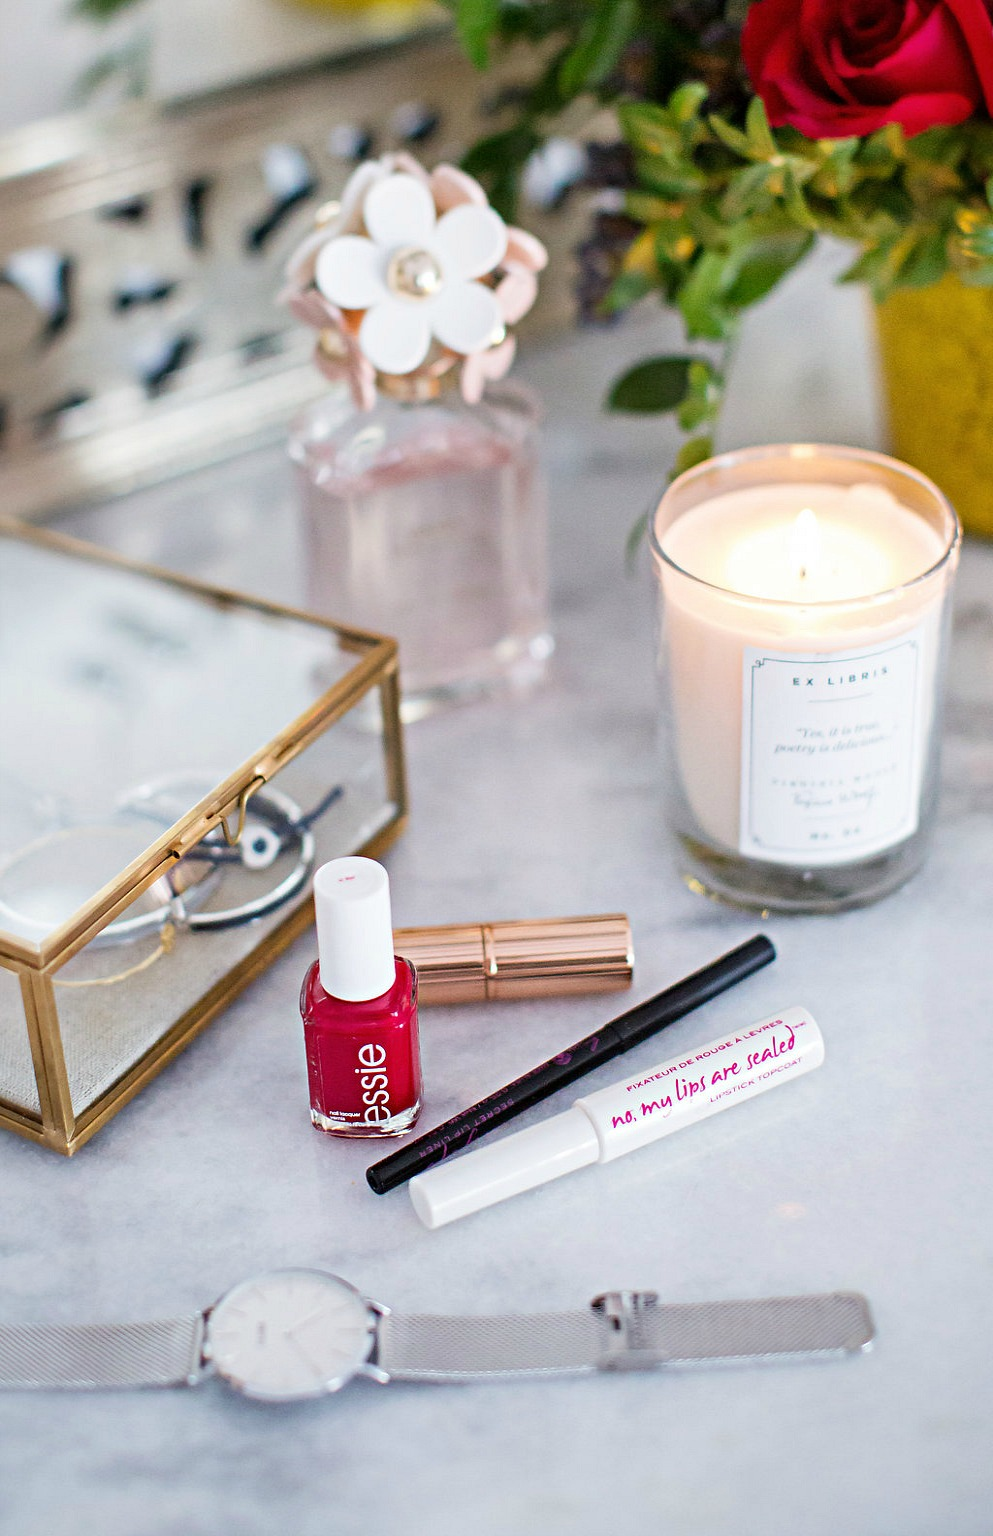 know-cosmetics-lips-are-sealed-holiday-red-lipstick-rose-city-style-guide-canadian-beauty-blog-15